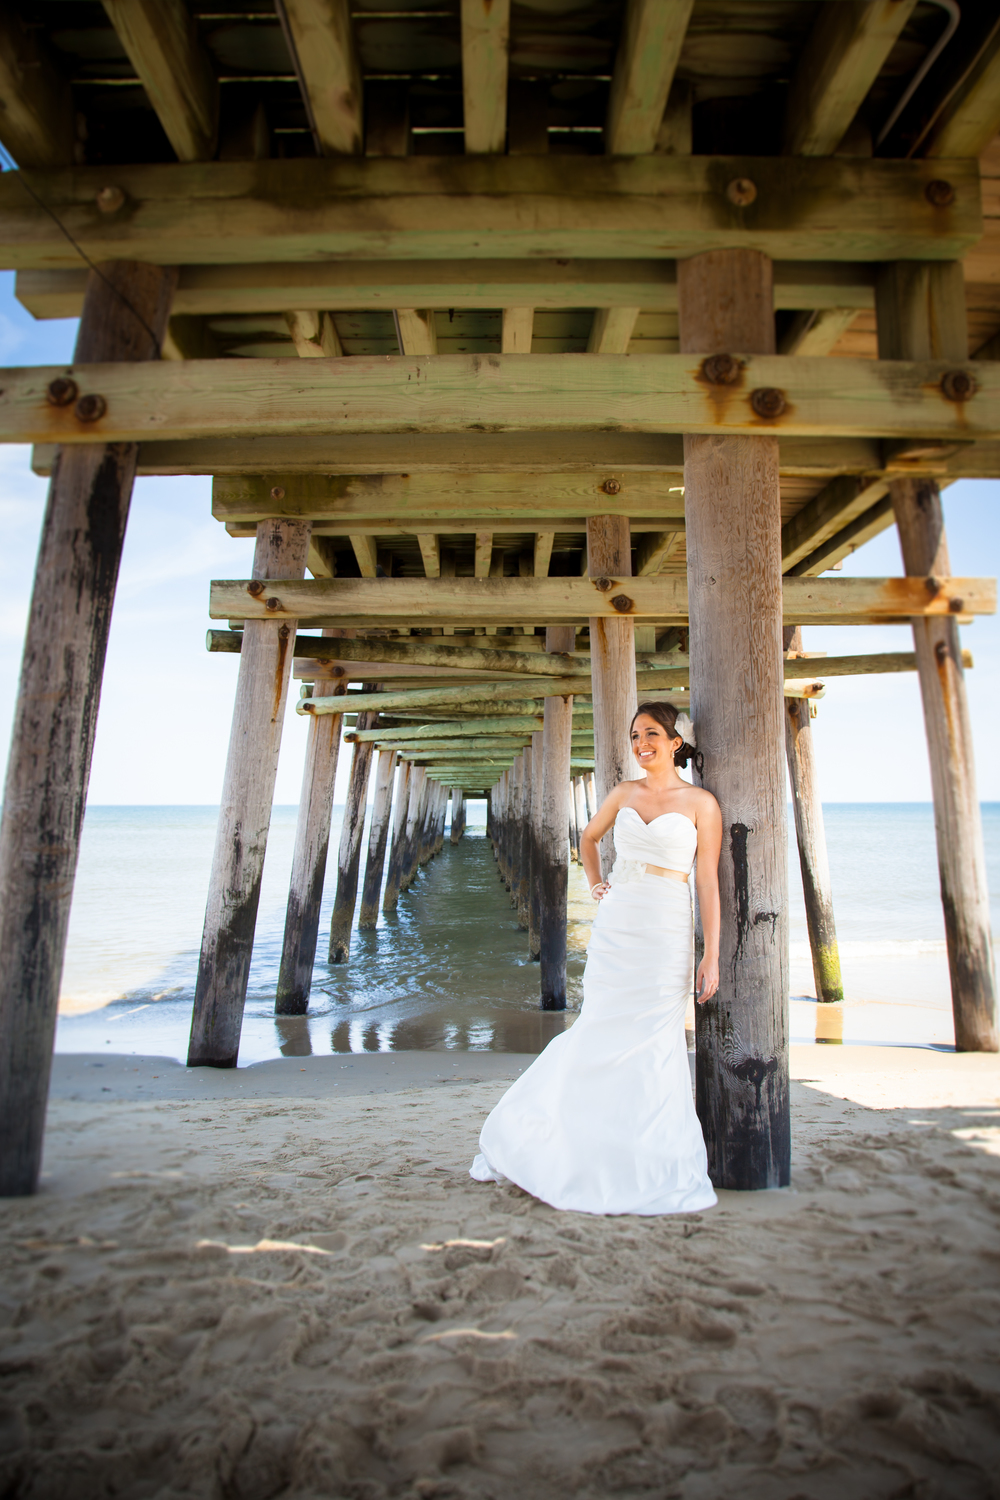 richard barlow photography - Bridal Portrait Photography in North Carolina